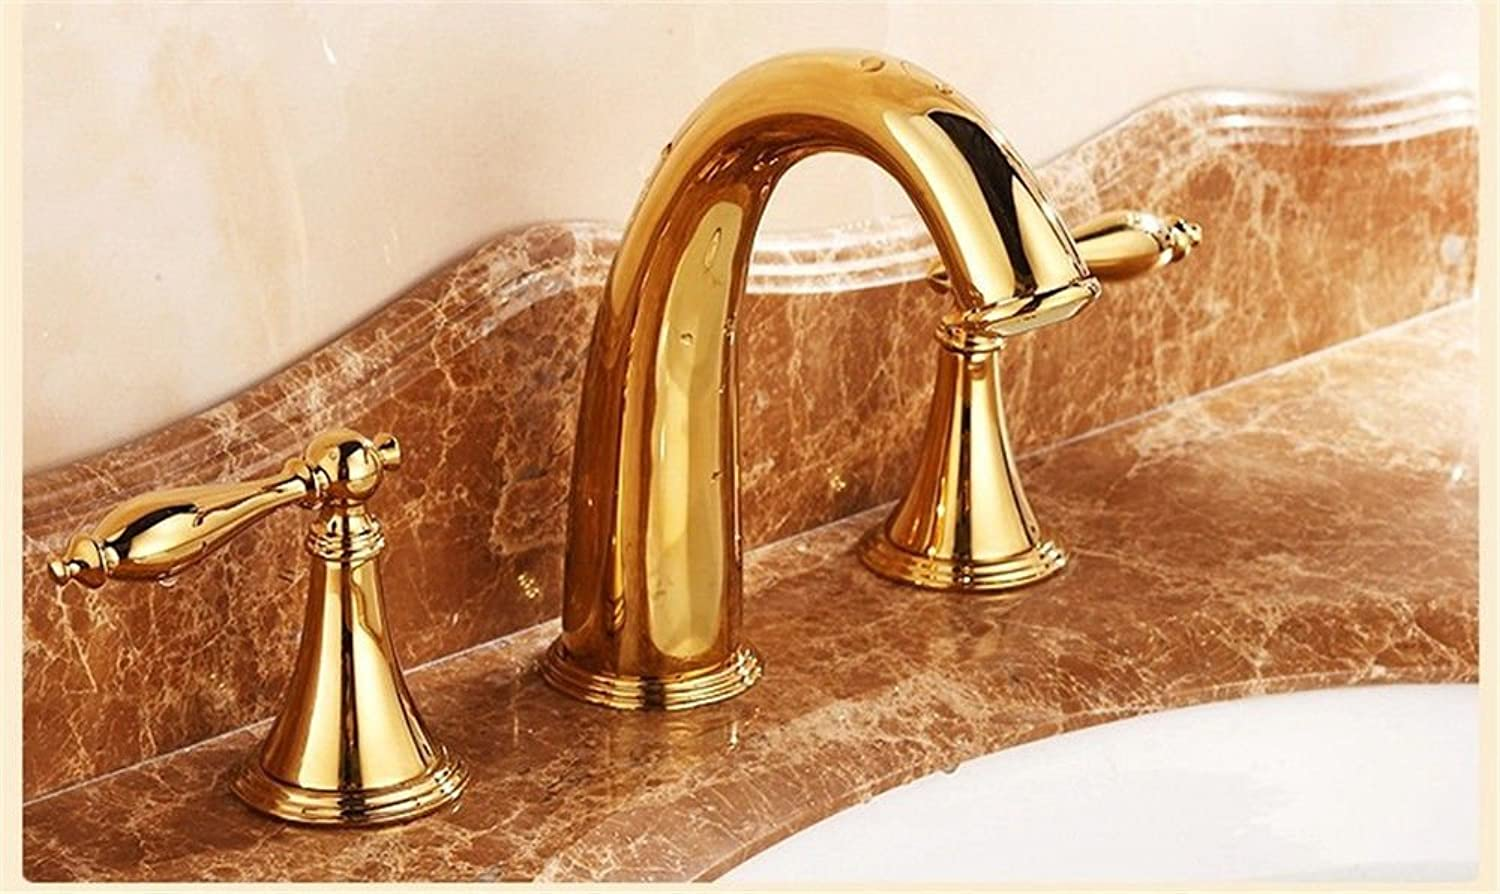 Hlluya Professional Sink Mixer Tap Kitchen Faucet The golden faucet double the sit-in titanium three 8-inch hole Washbasin Faucet